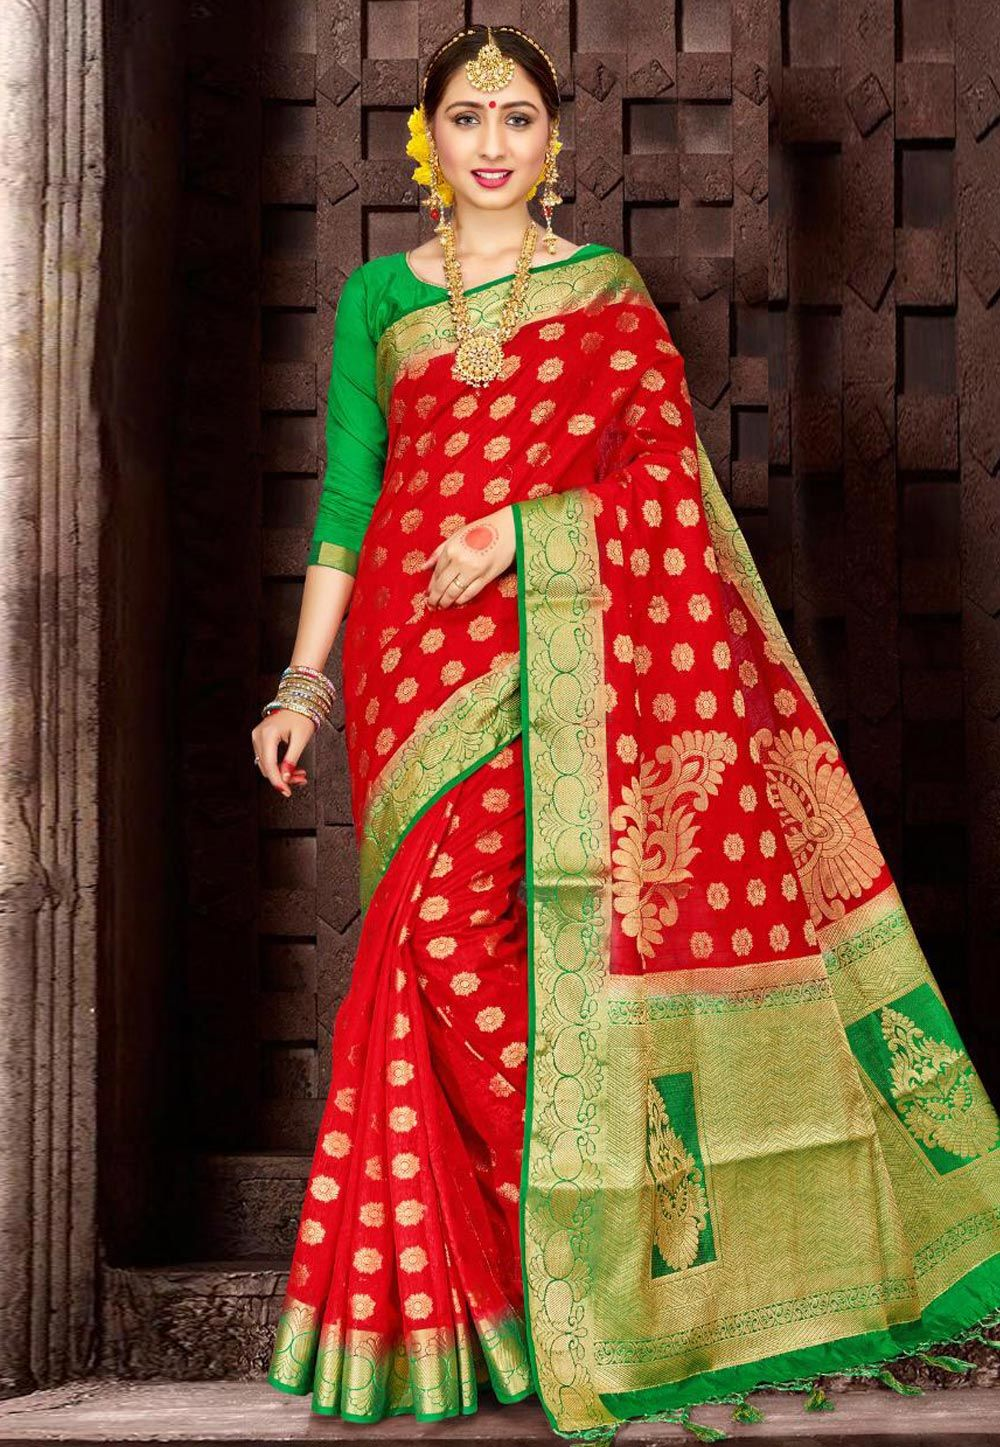 389dd64641d26 Buy Red Banarasi Silk Saree With Blouse 156387 with blouse online at lowest  price from vast collection of sarees at Indianclothstore.com.